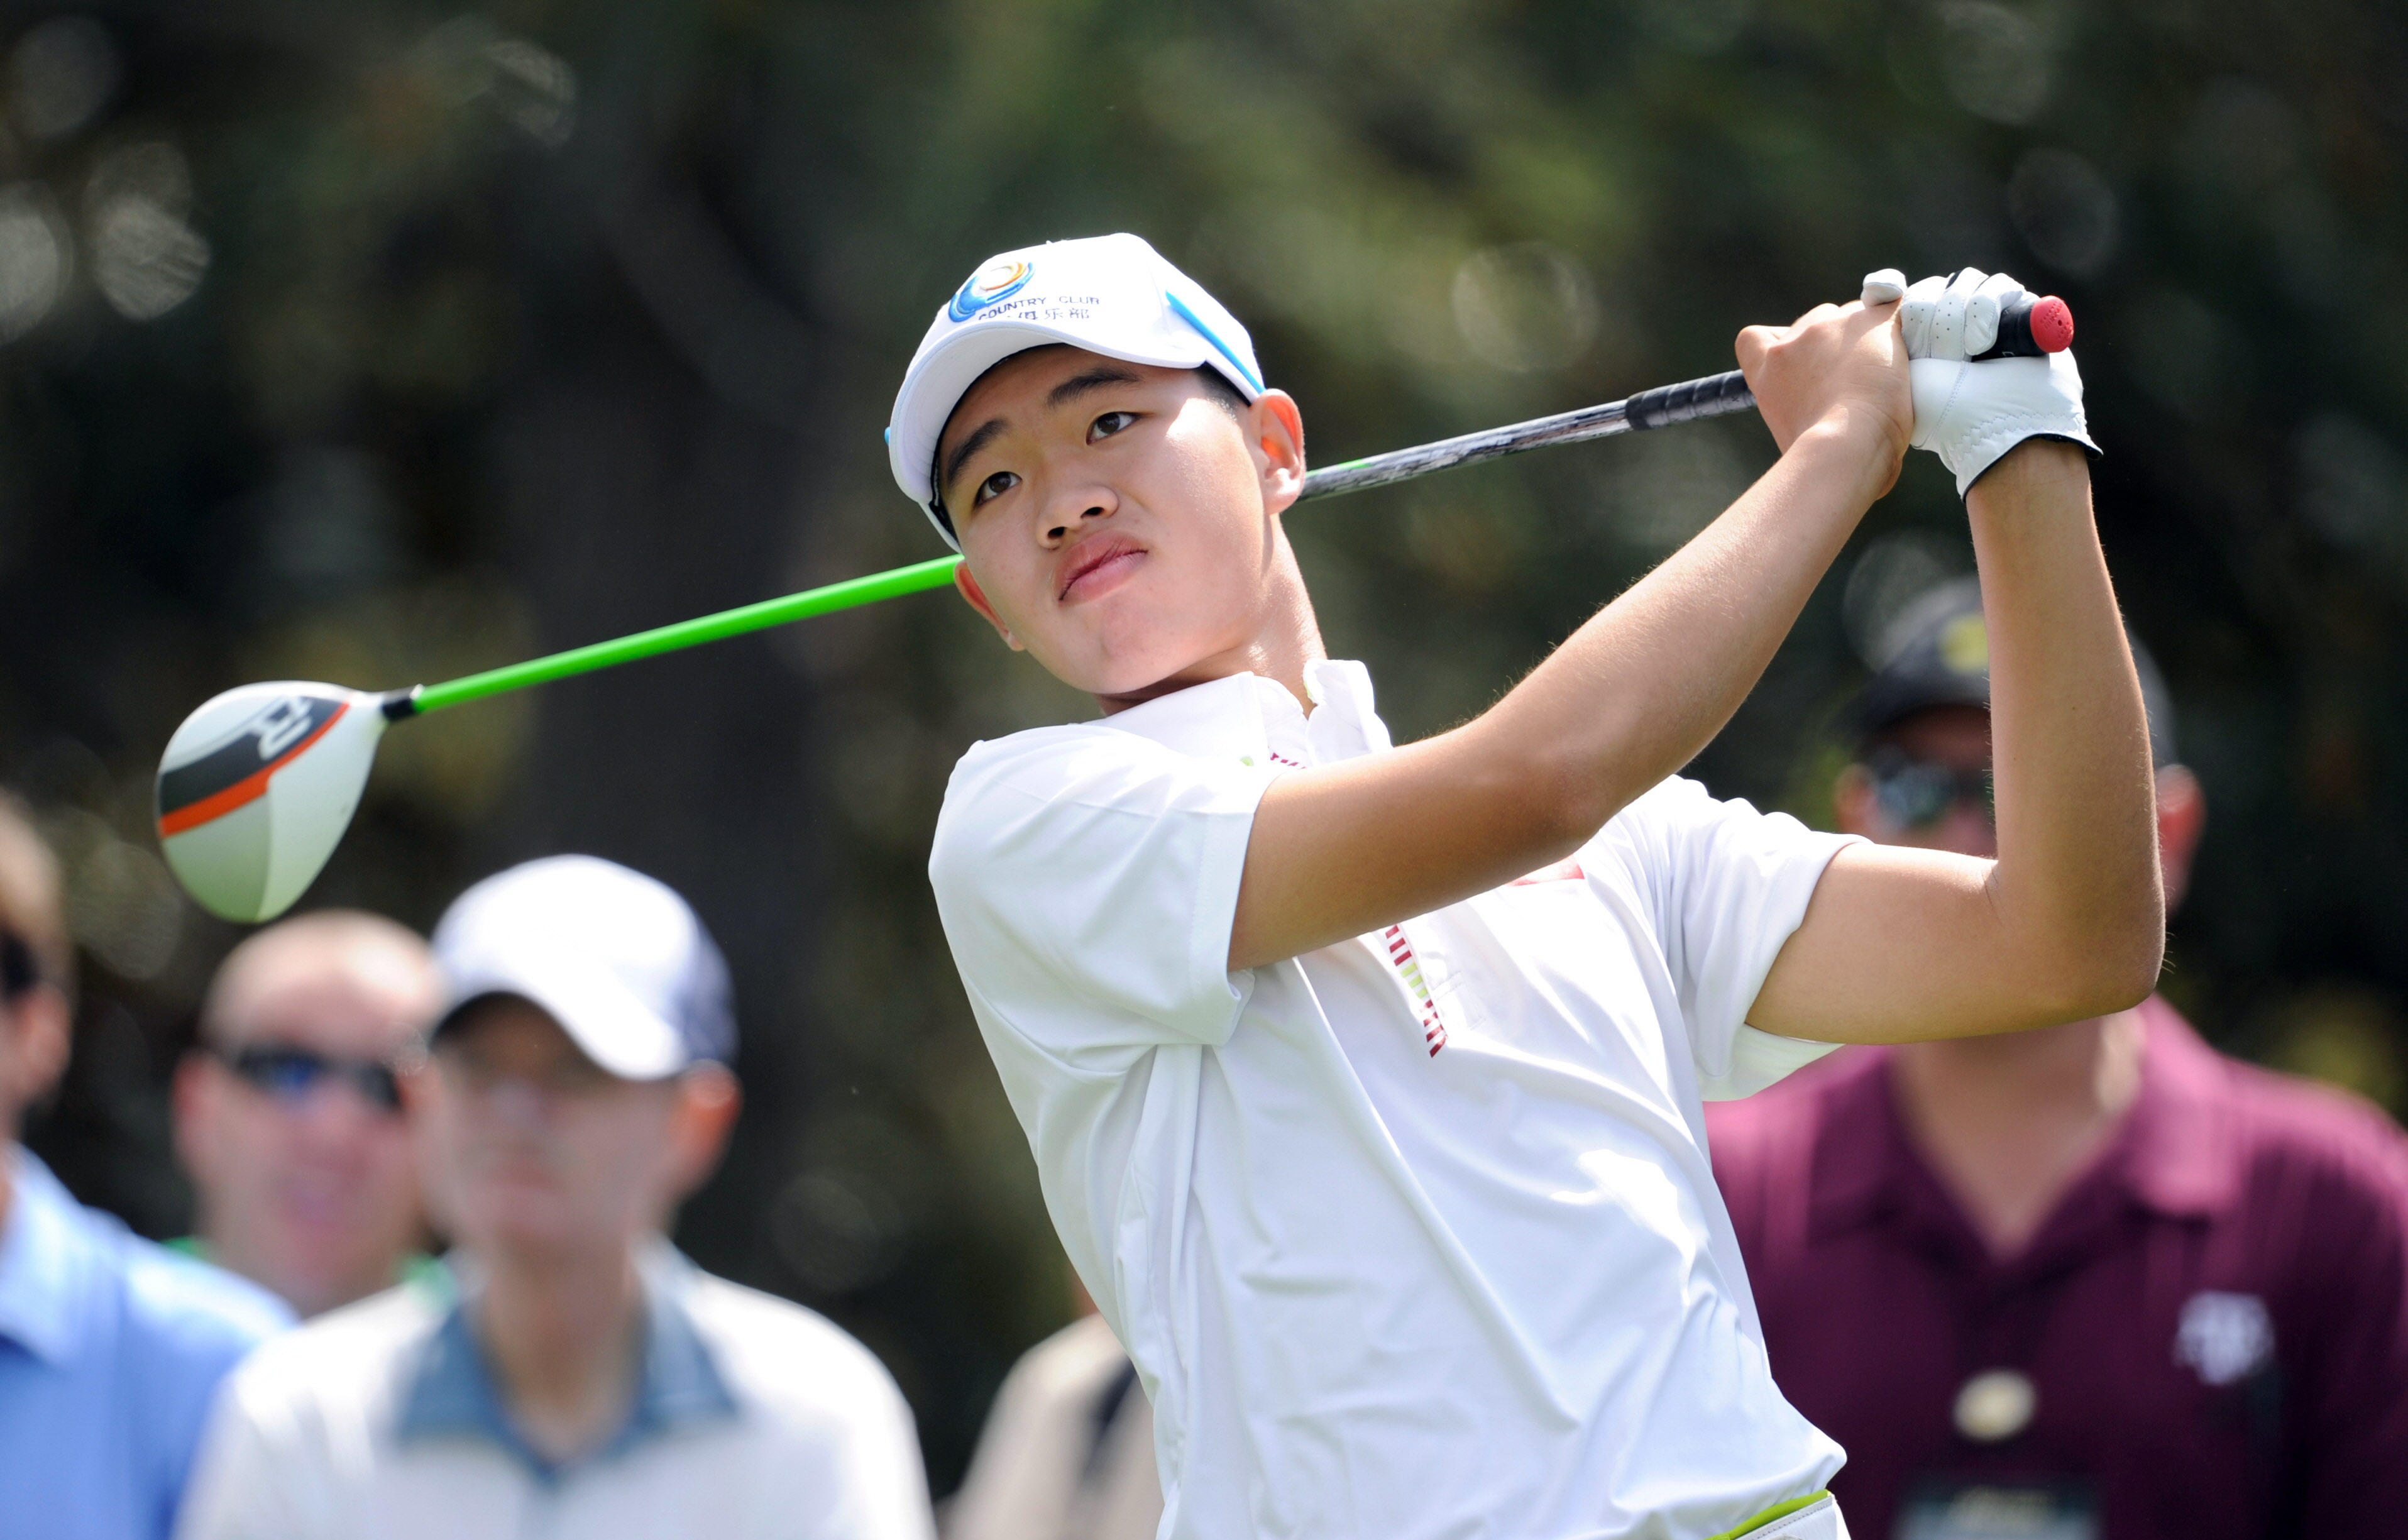 Tianlang Guan hits from the 15th tee during practice round play at Augusta National. (USAT Sports)